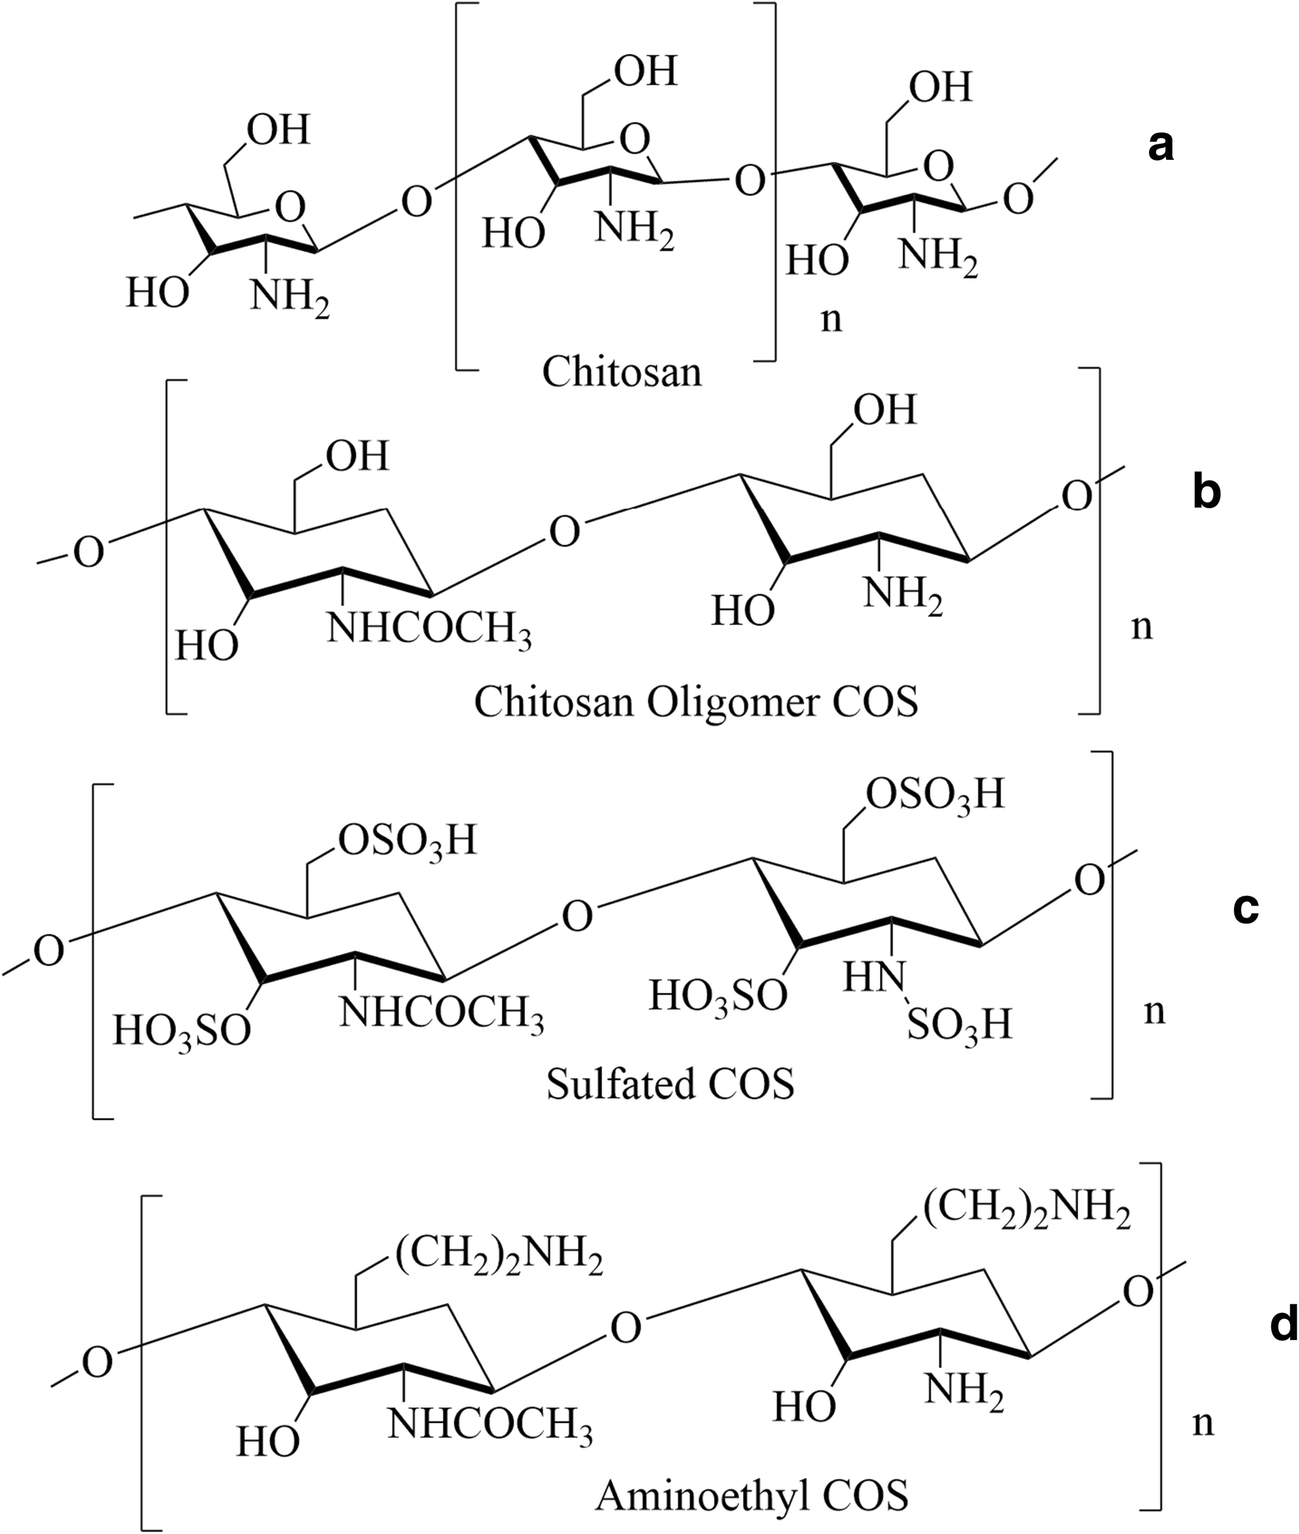 Chitosan and its derivatives: synthesis, biotechnological